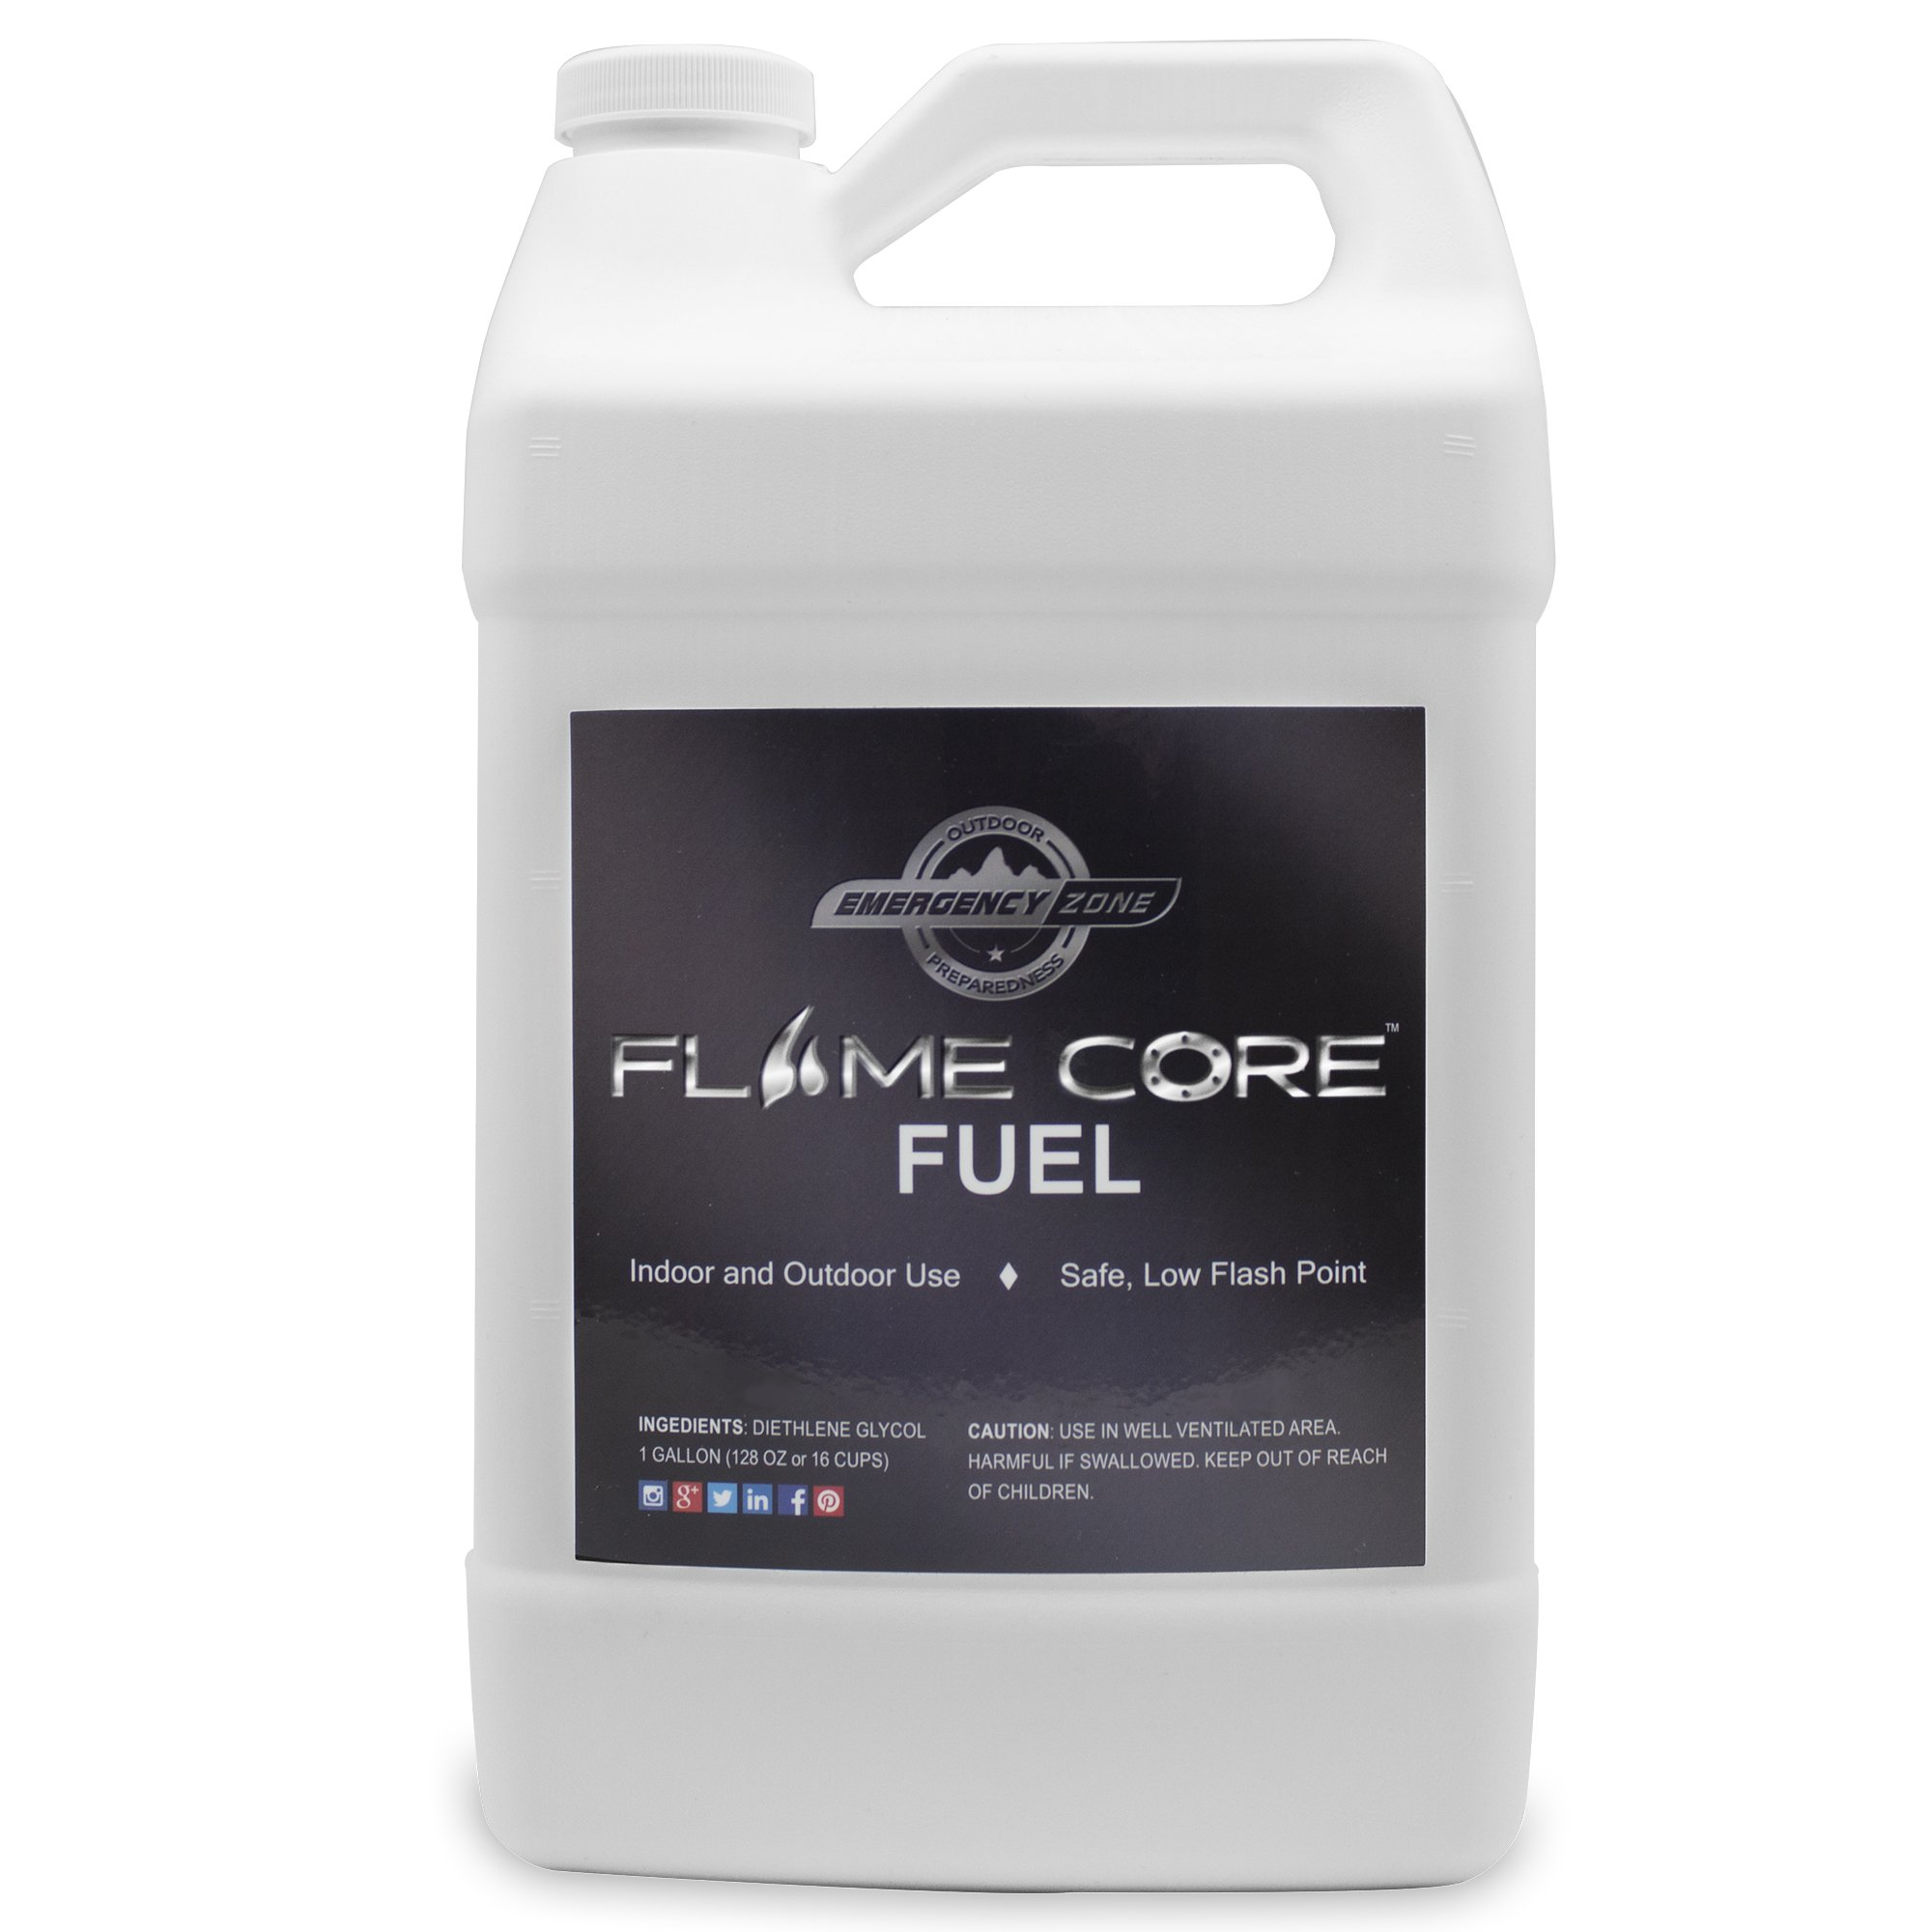 Emergency Zone FlameCore Reusable Fuel Cell Gallon Fuel Refill, Choose 1 or 2 Pack (FlameCore Fuel Gallon Refill, 1 Pack) by Emergency Zone